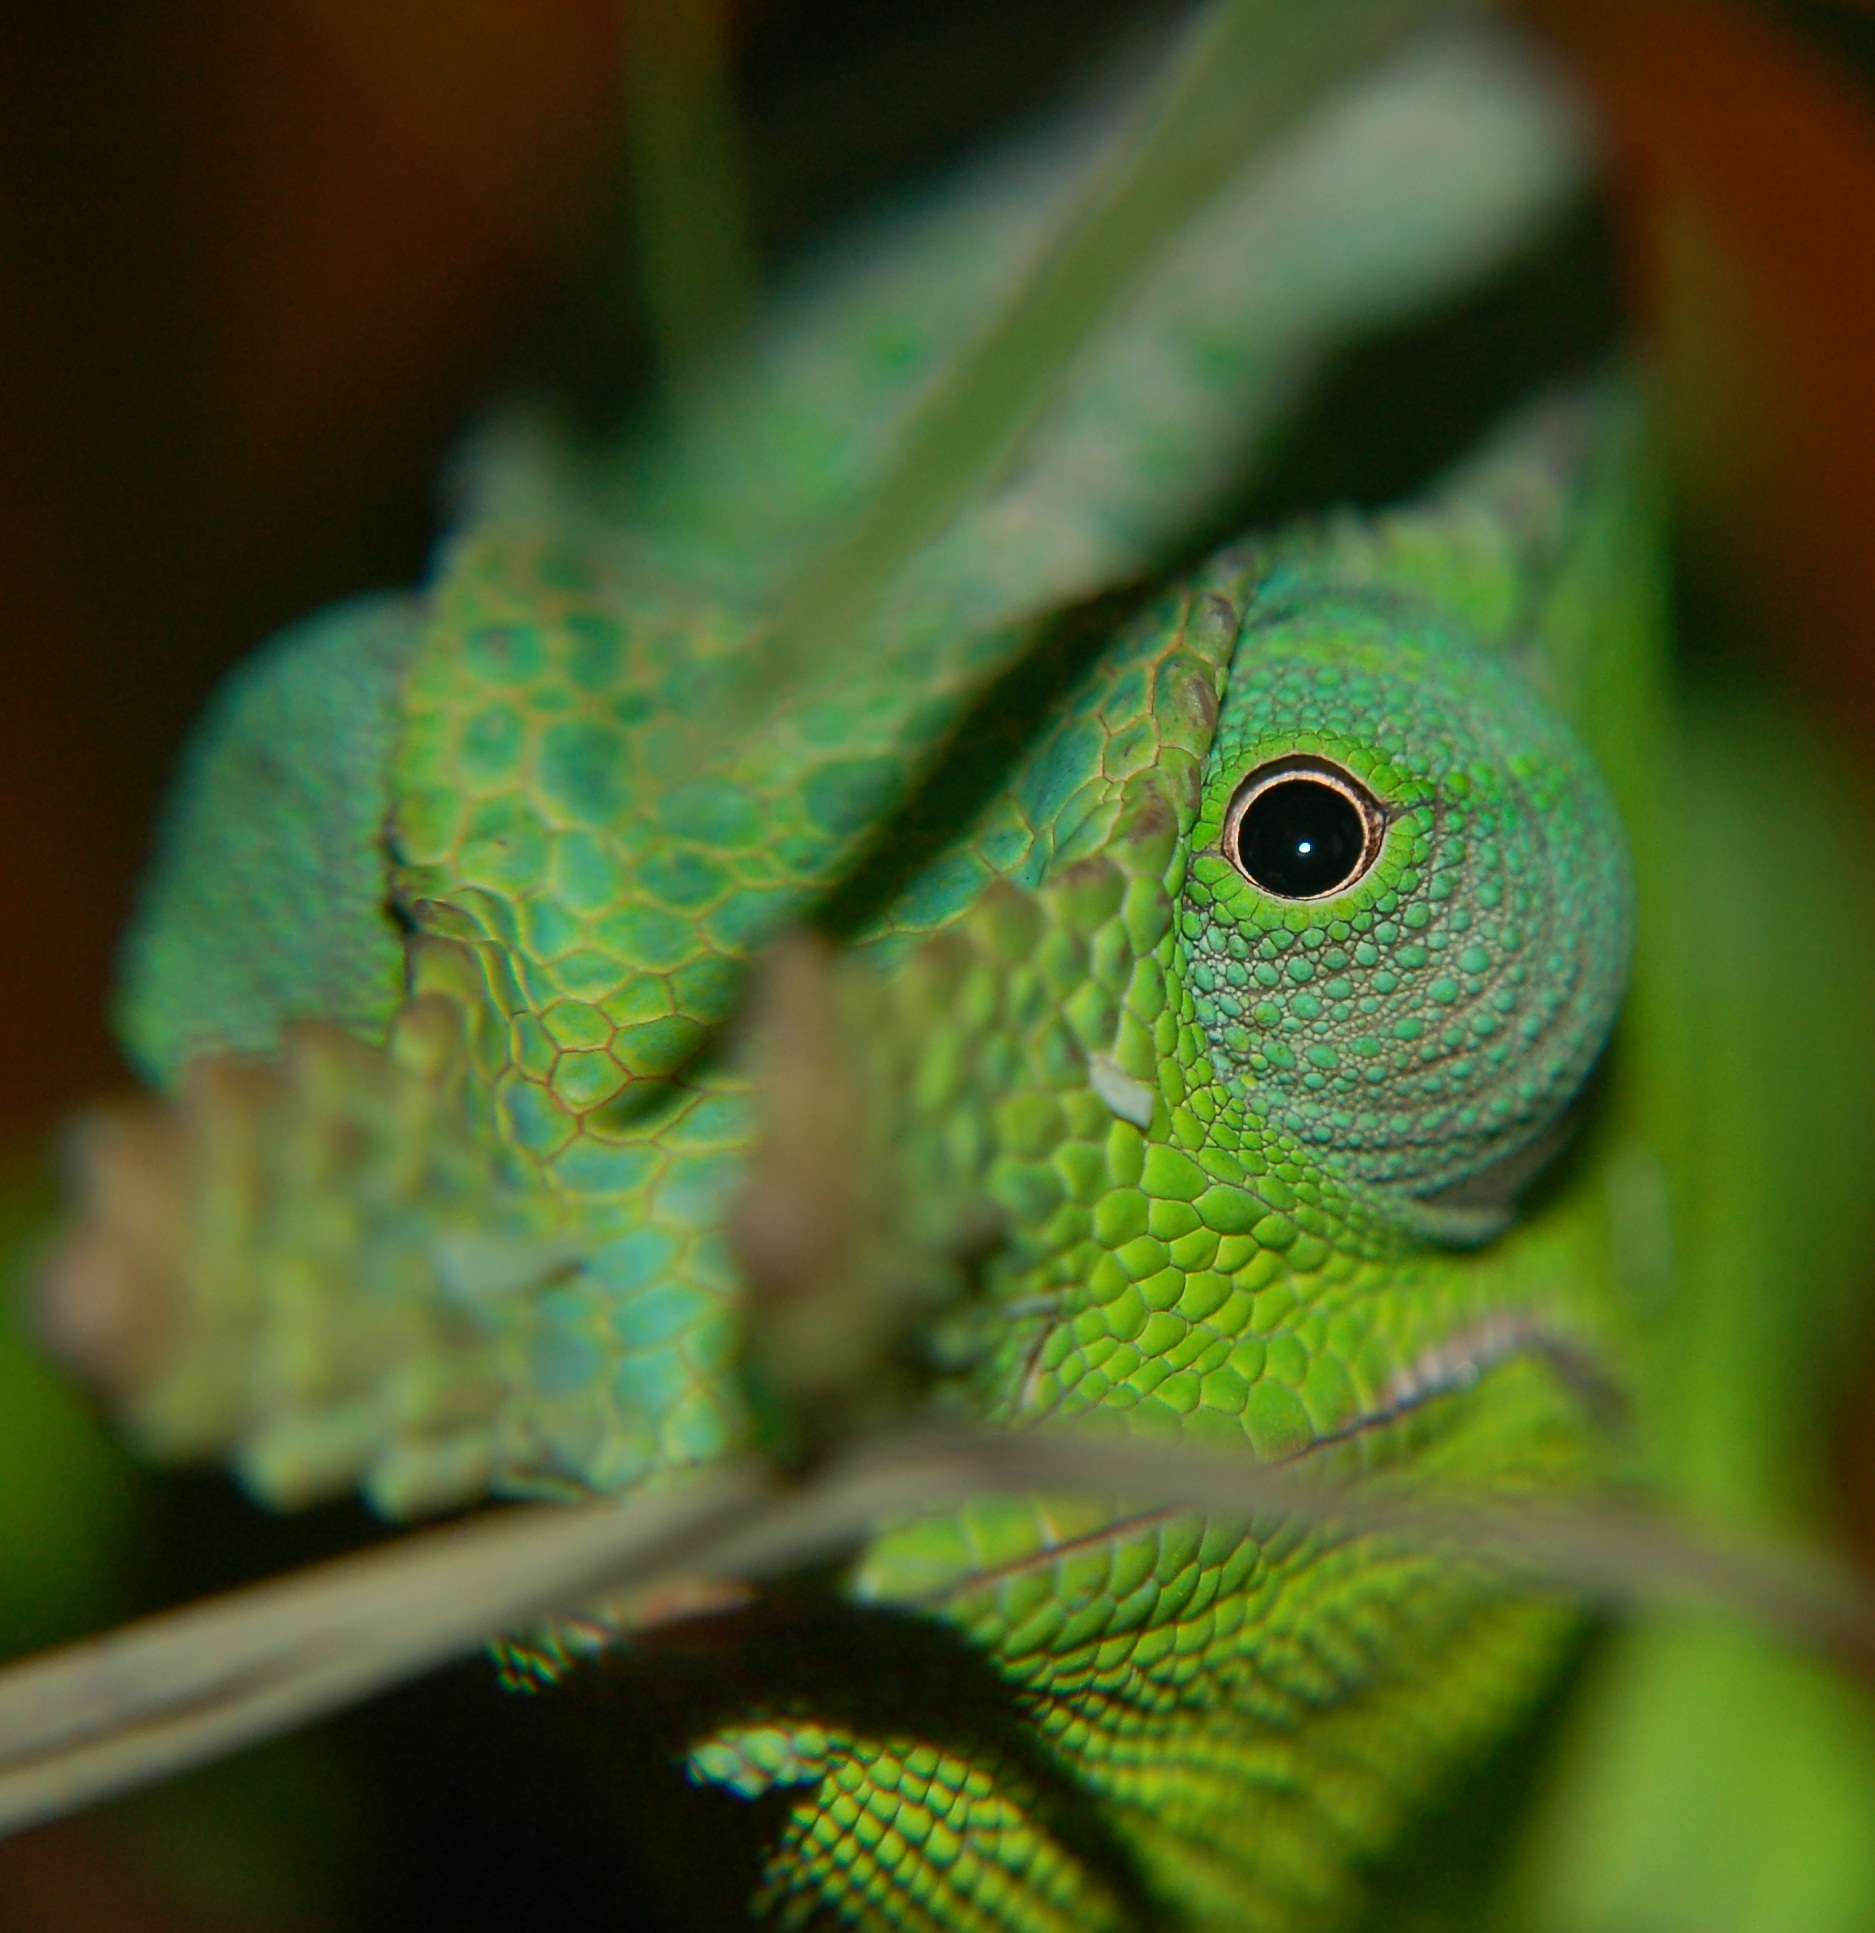 A Handsome Giant Fischer's Chameleon Peeking Through The Leaves